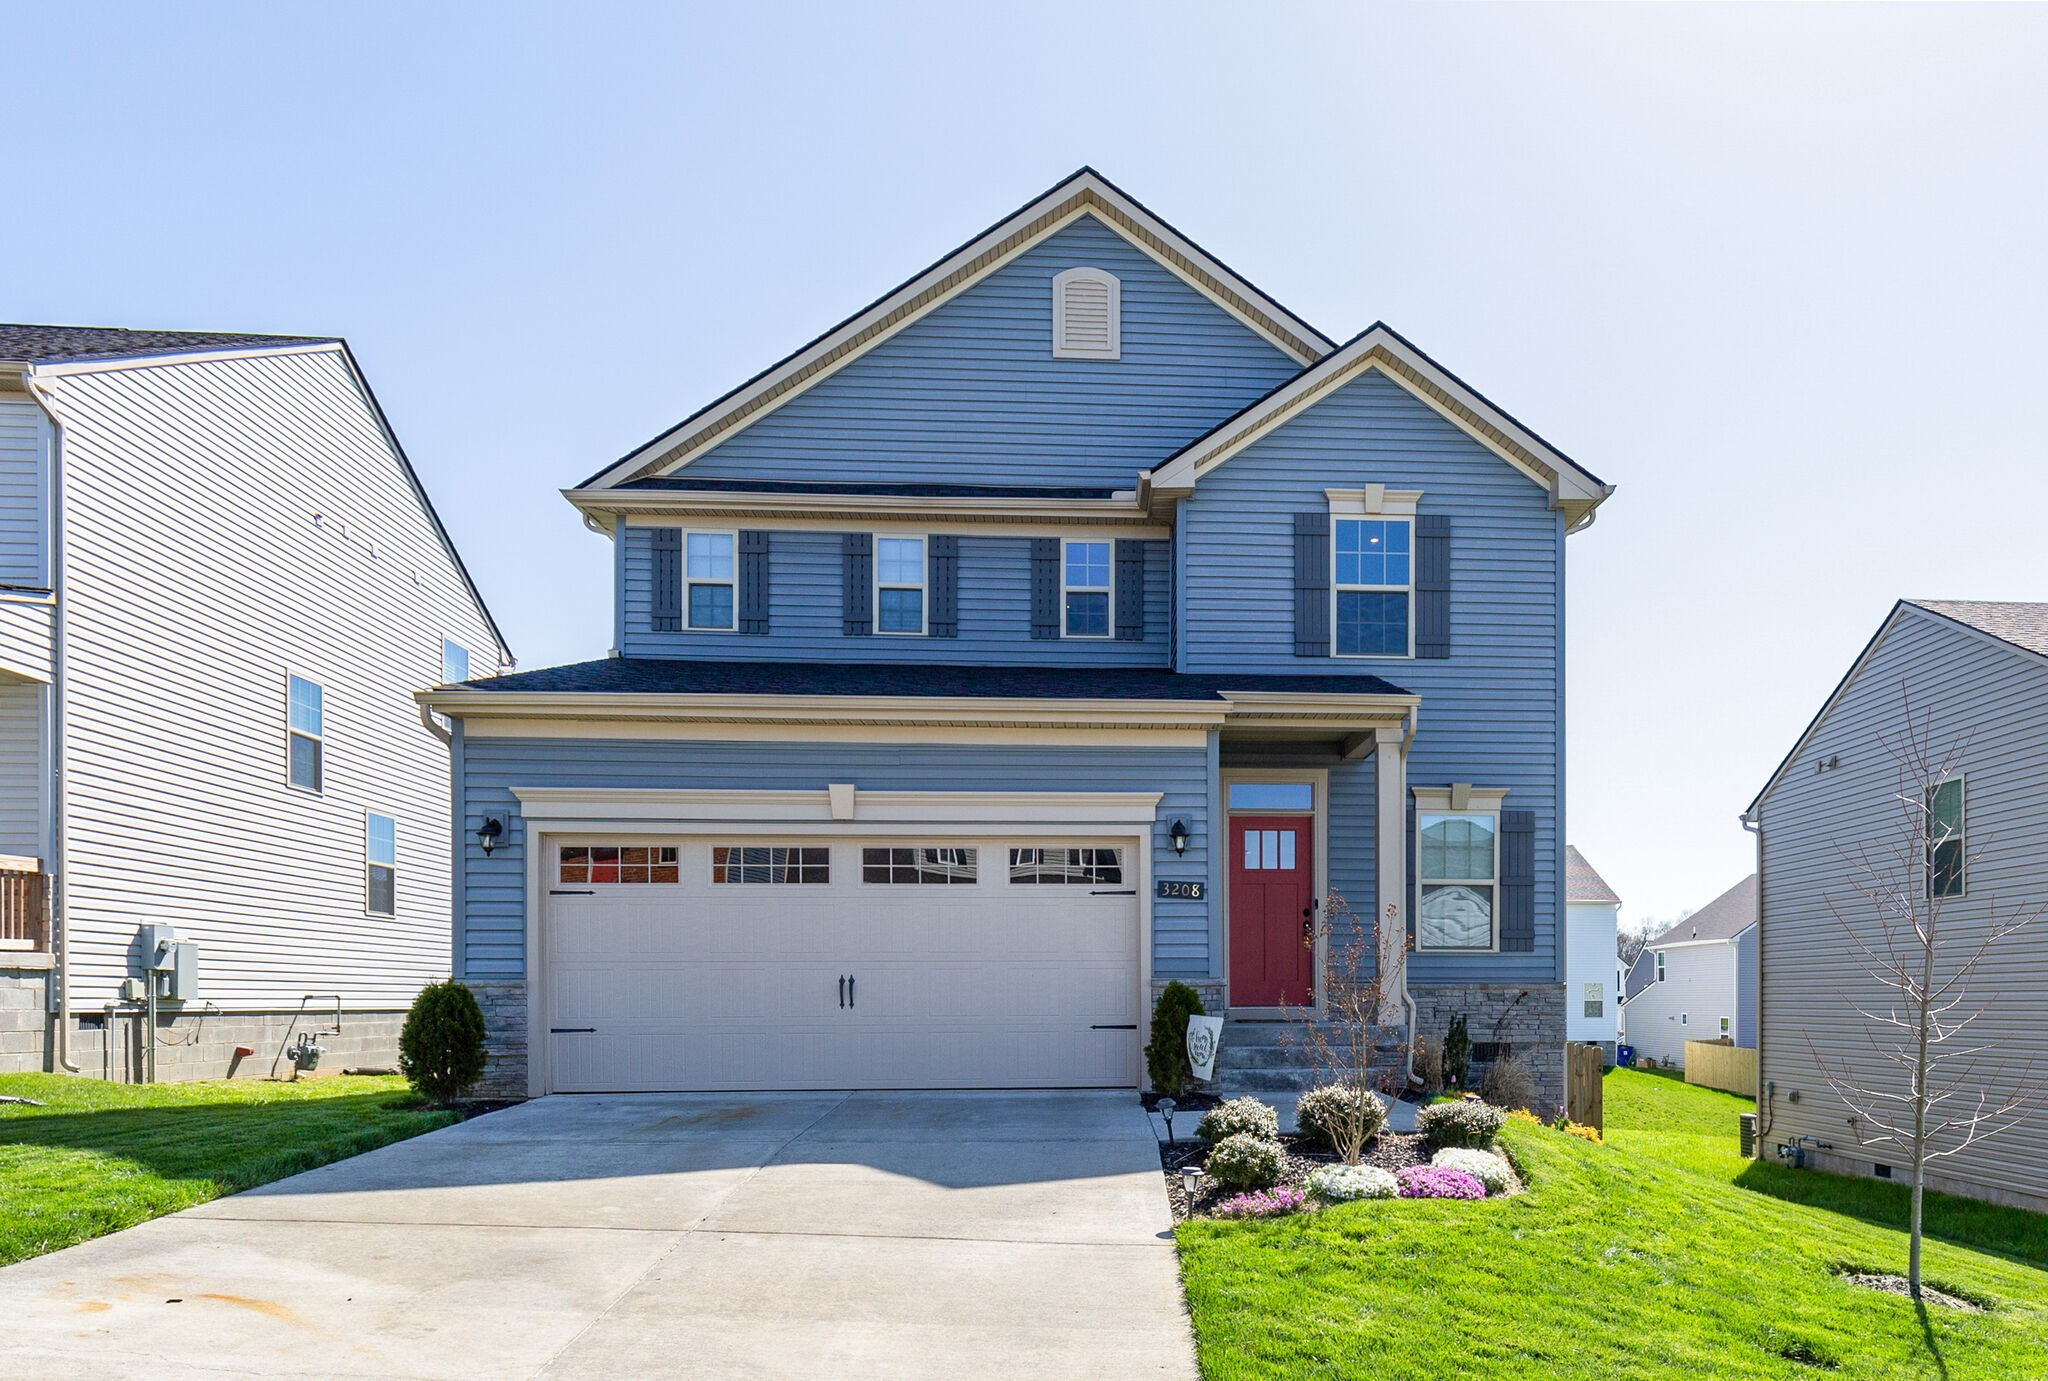 This Well Maintained home sits within mins of Saturn Pkwy, accented stone, Strongly equipped with Granite  Counters, Engineered Hardwoods & Espresso Cabinets, SS Appliances, Large Kitchen Island with Bar Stool Seating and Opens to Family Room Looking out at Fenced Backyard, Wonderful Neutral Colors that goes with anything, French Door Fridge stays,Tiled Master Shower, Extra Storage in Garage, Thick Lush Lawn, Low HOAs.